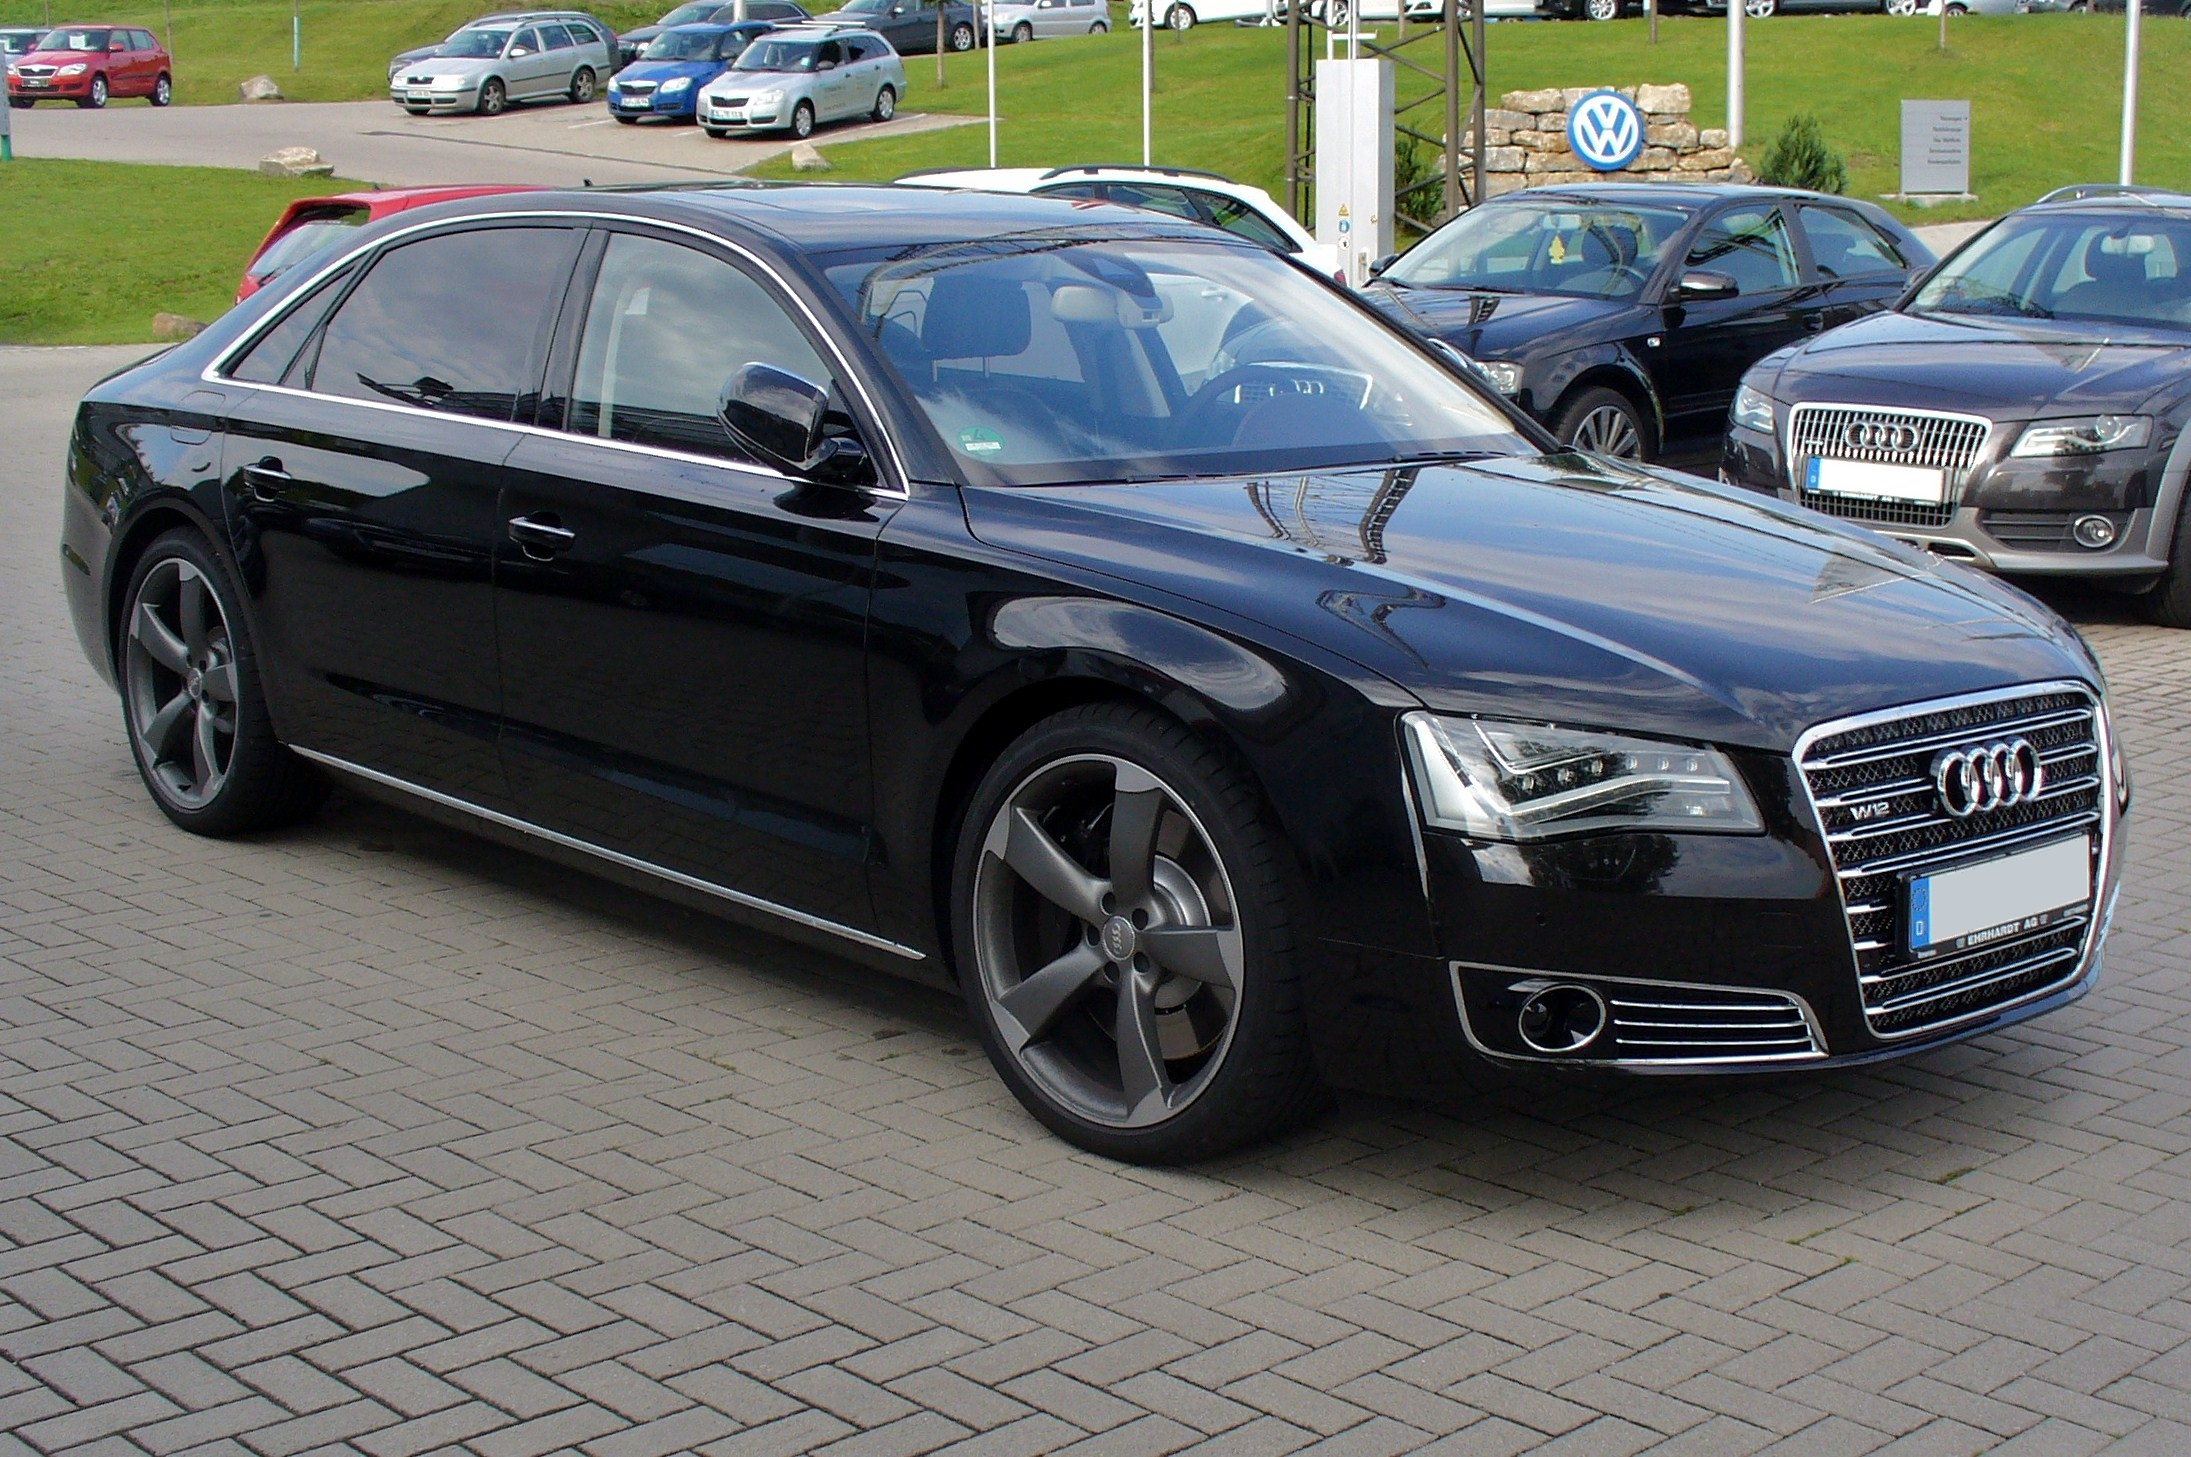 audi a8 long (4e) 2008 images #15